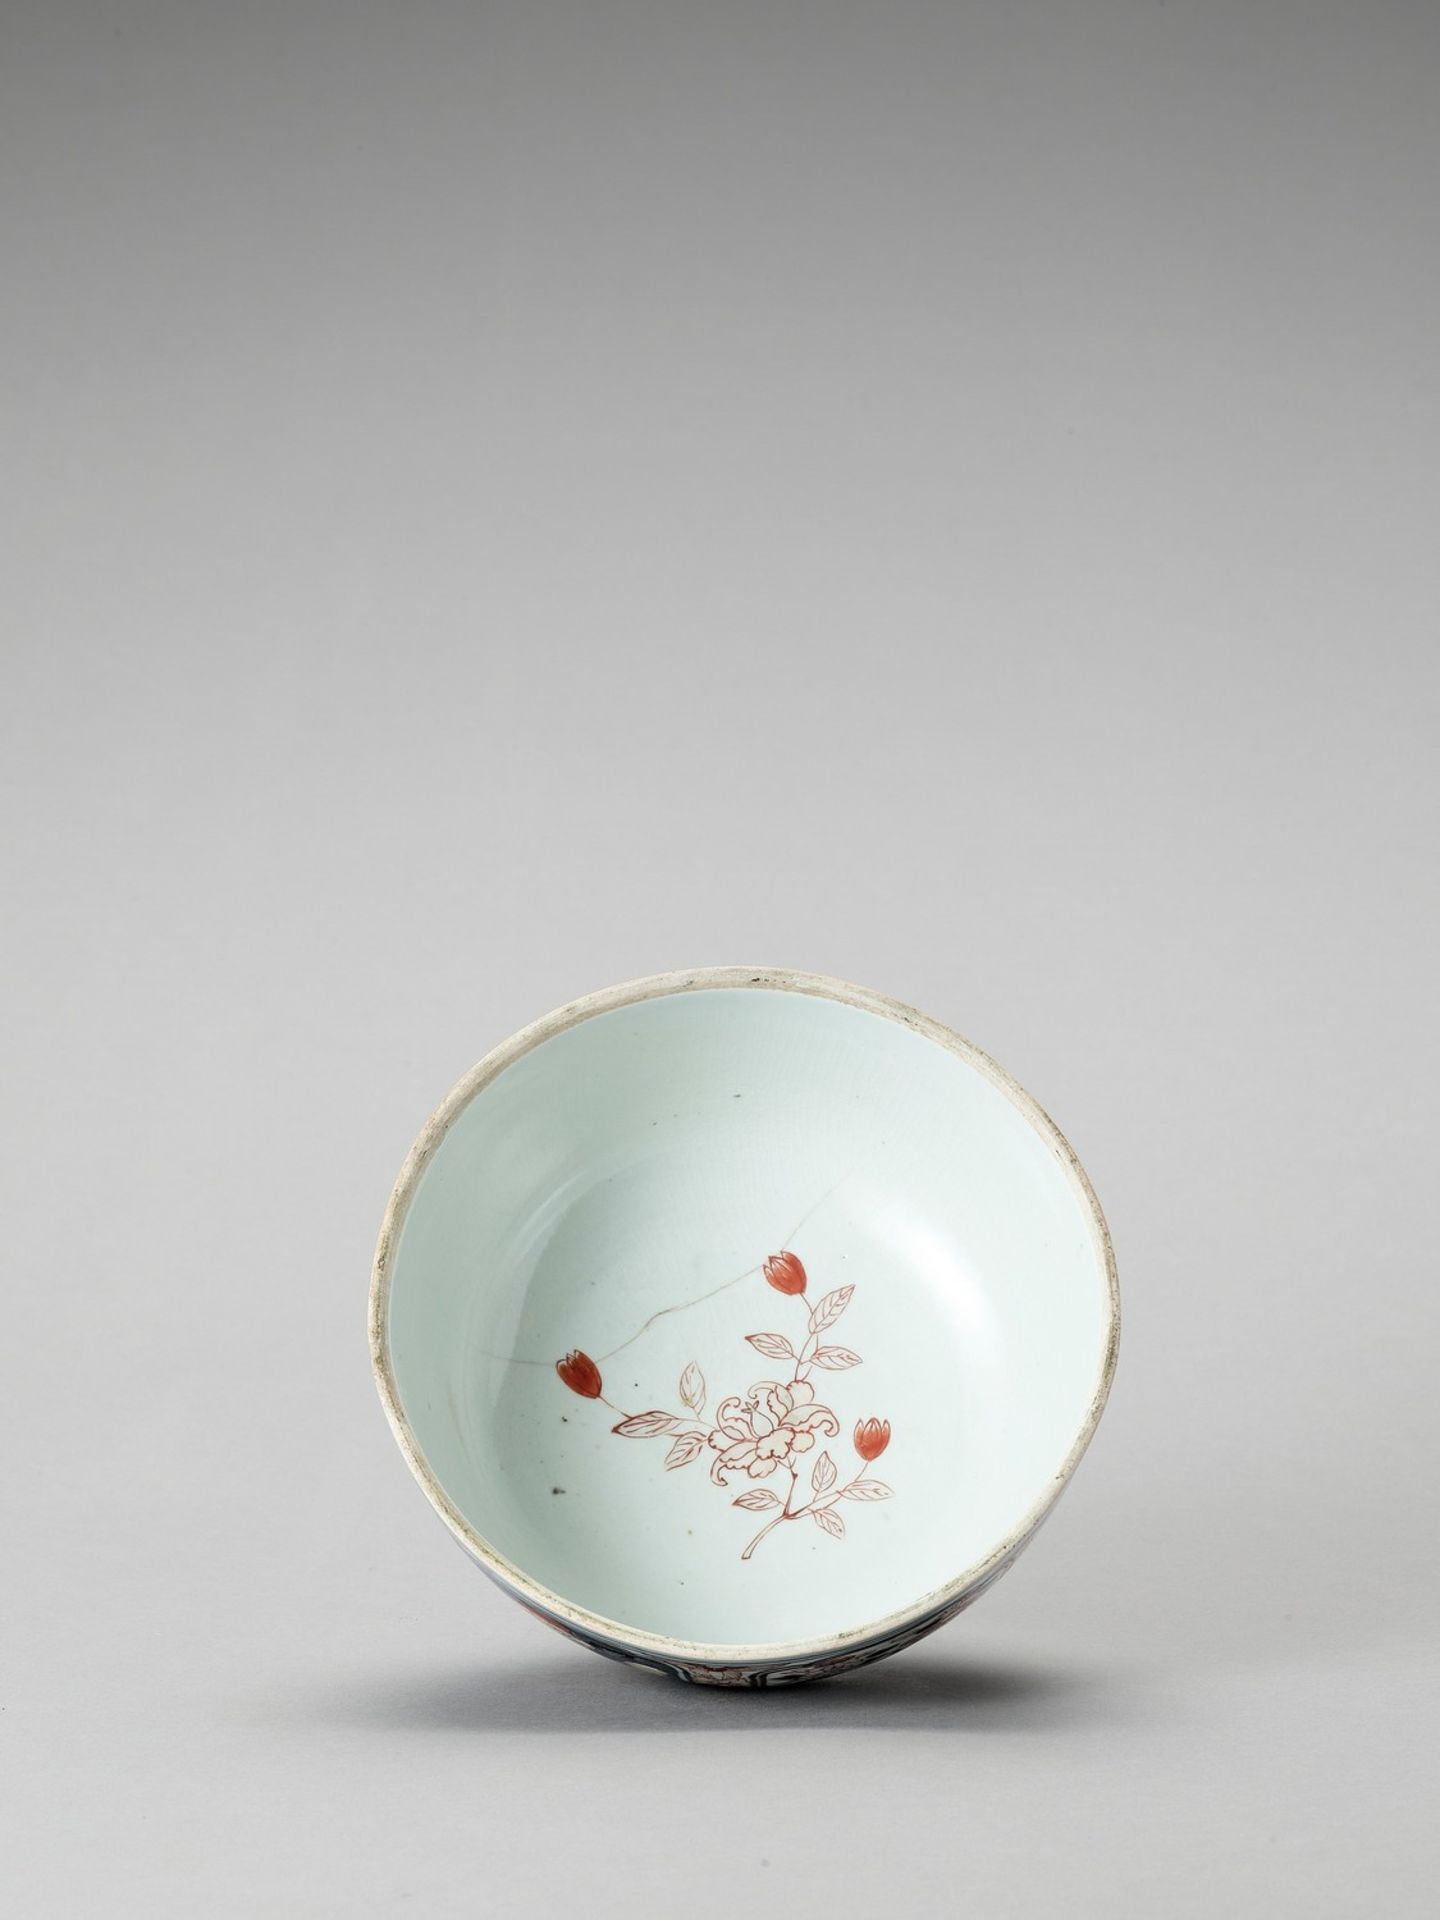 AN IMARI PORCELAIN BOX WITH COVER - Image 5 of 7